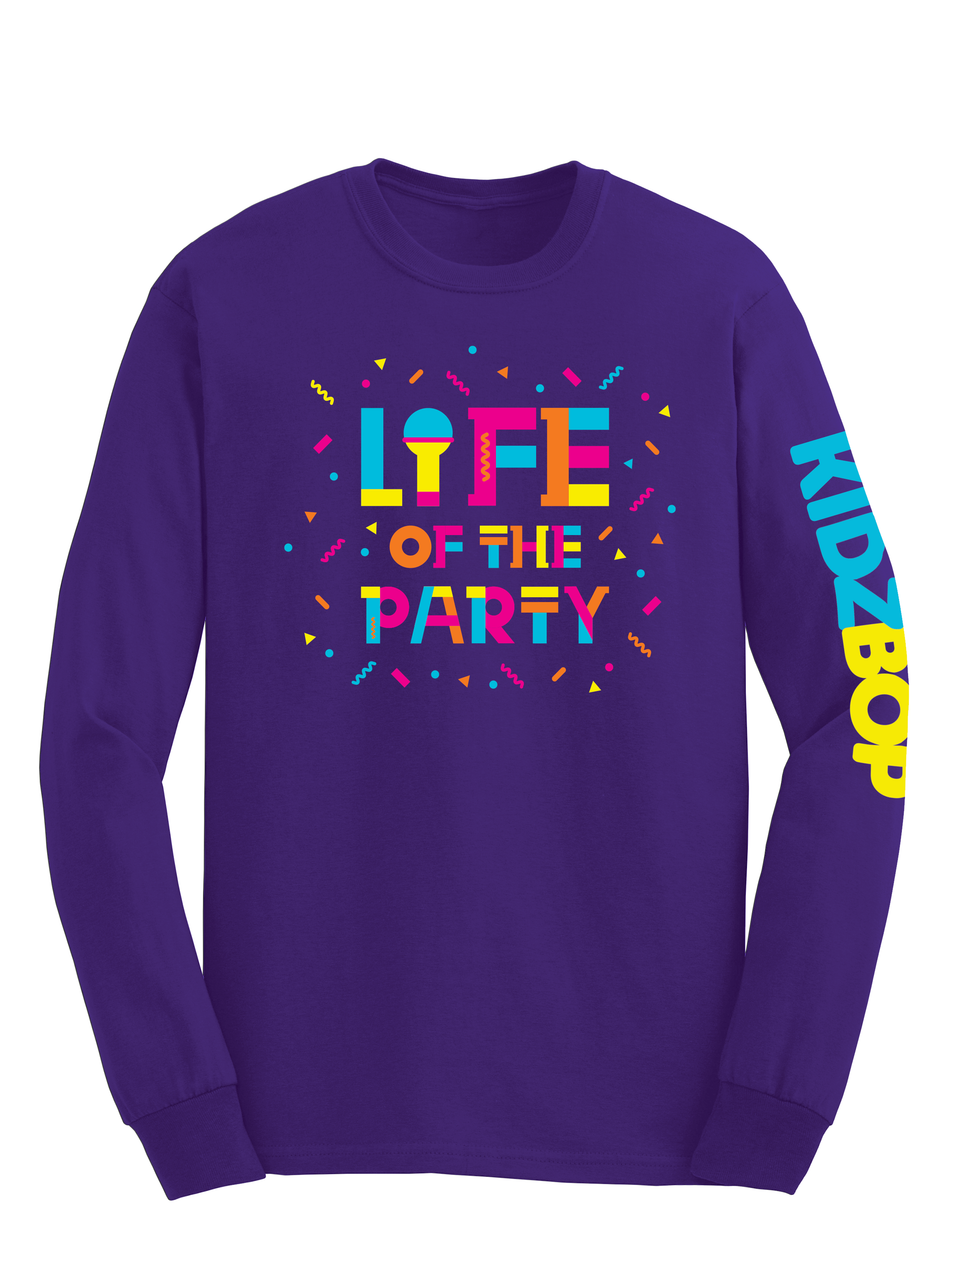 KIDZ BOP Life Of The Party Purple Longsleeve Youth Tee